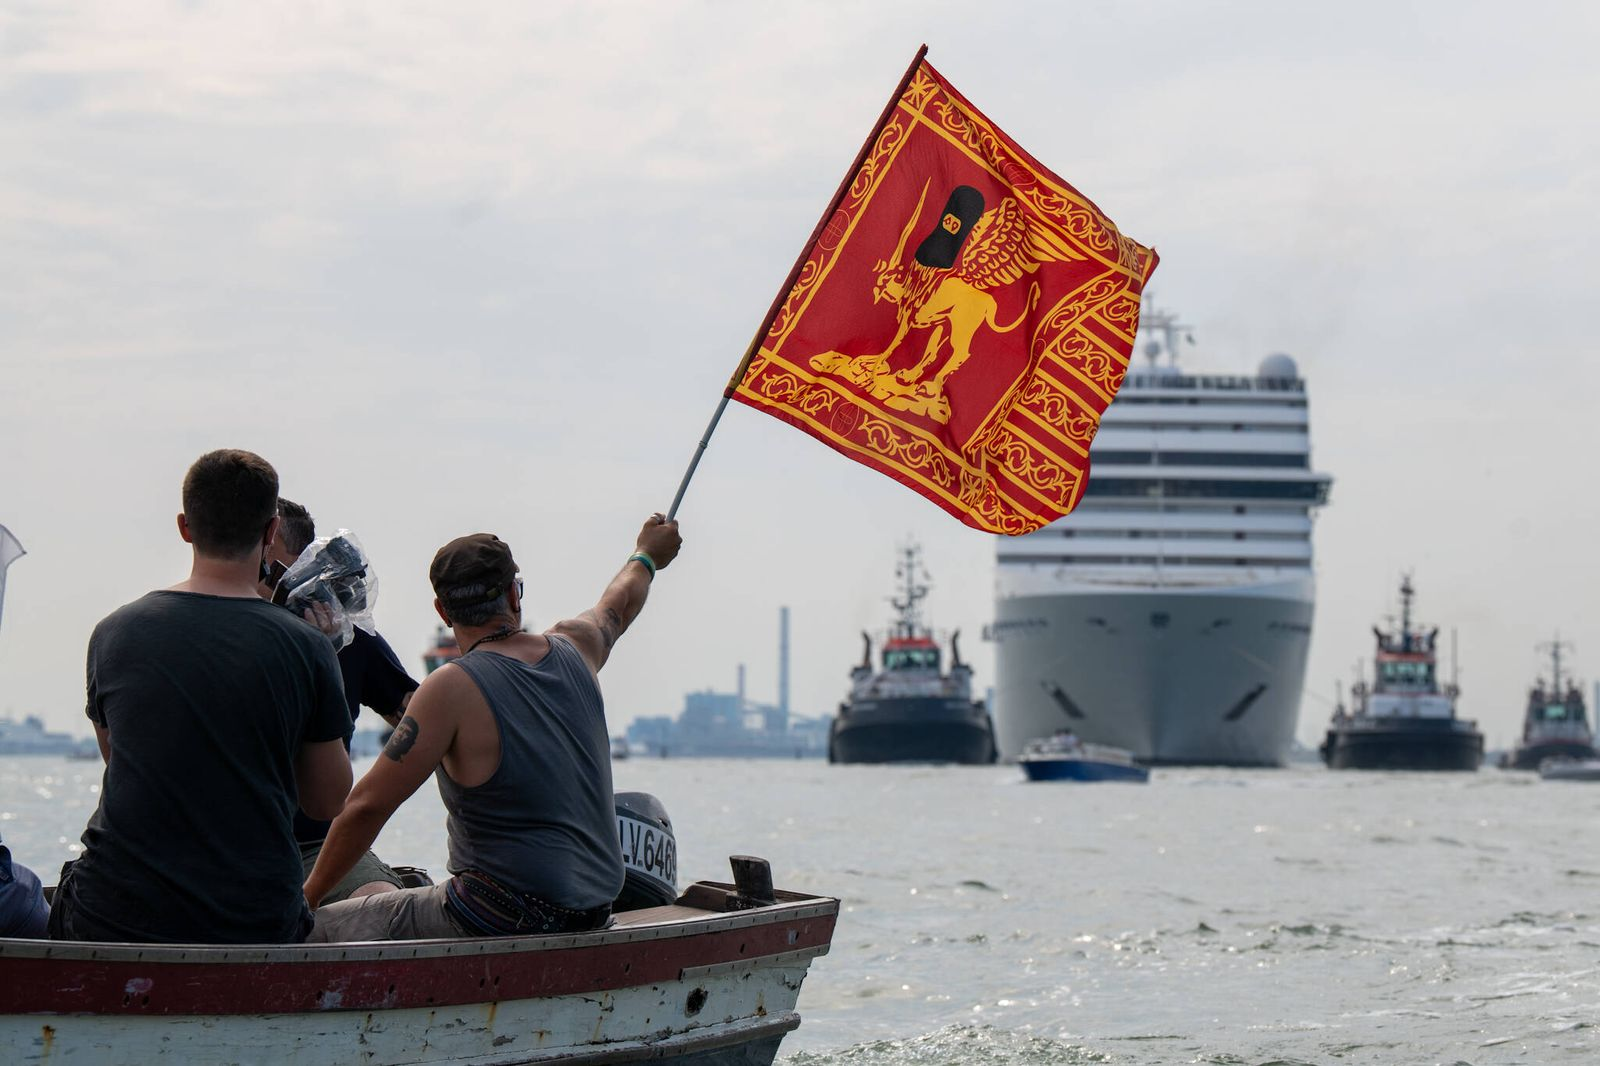 Protest Against Giant Cruise Ships The MSC ship Orchestra passing on the Giudecca canal in Venice, in Venice, Italy, on